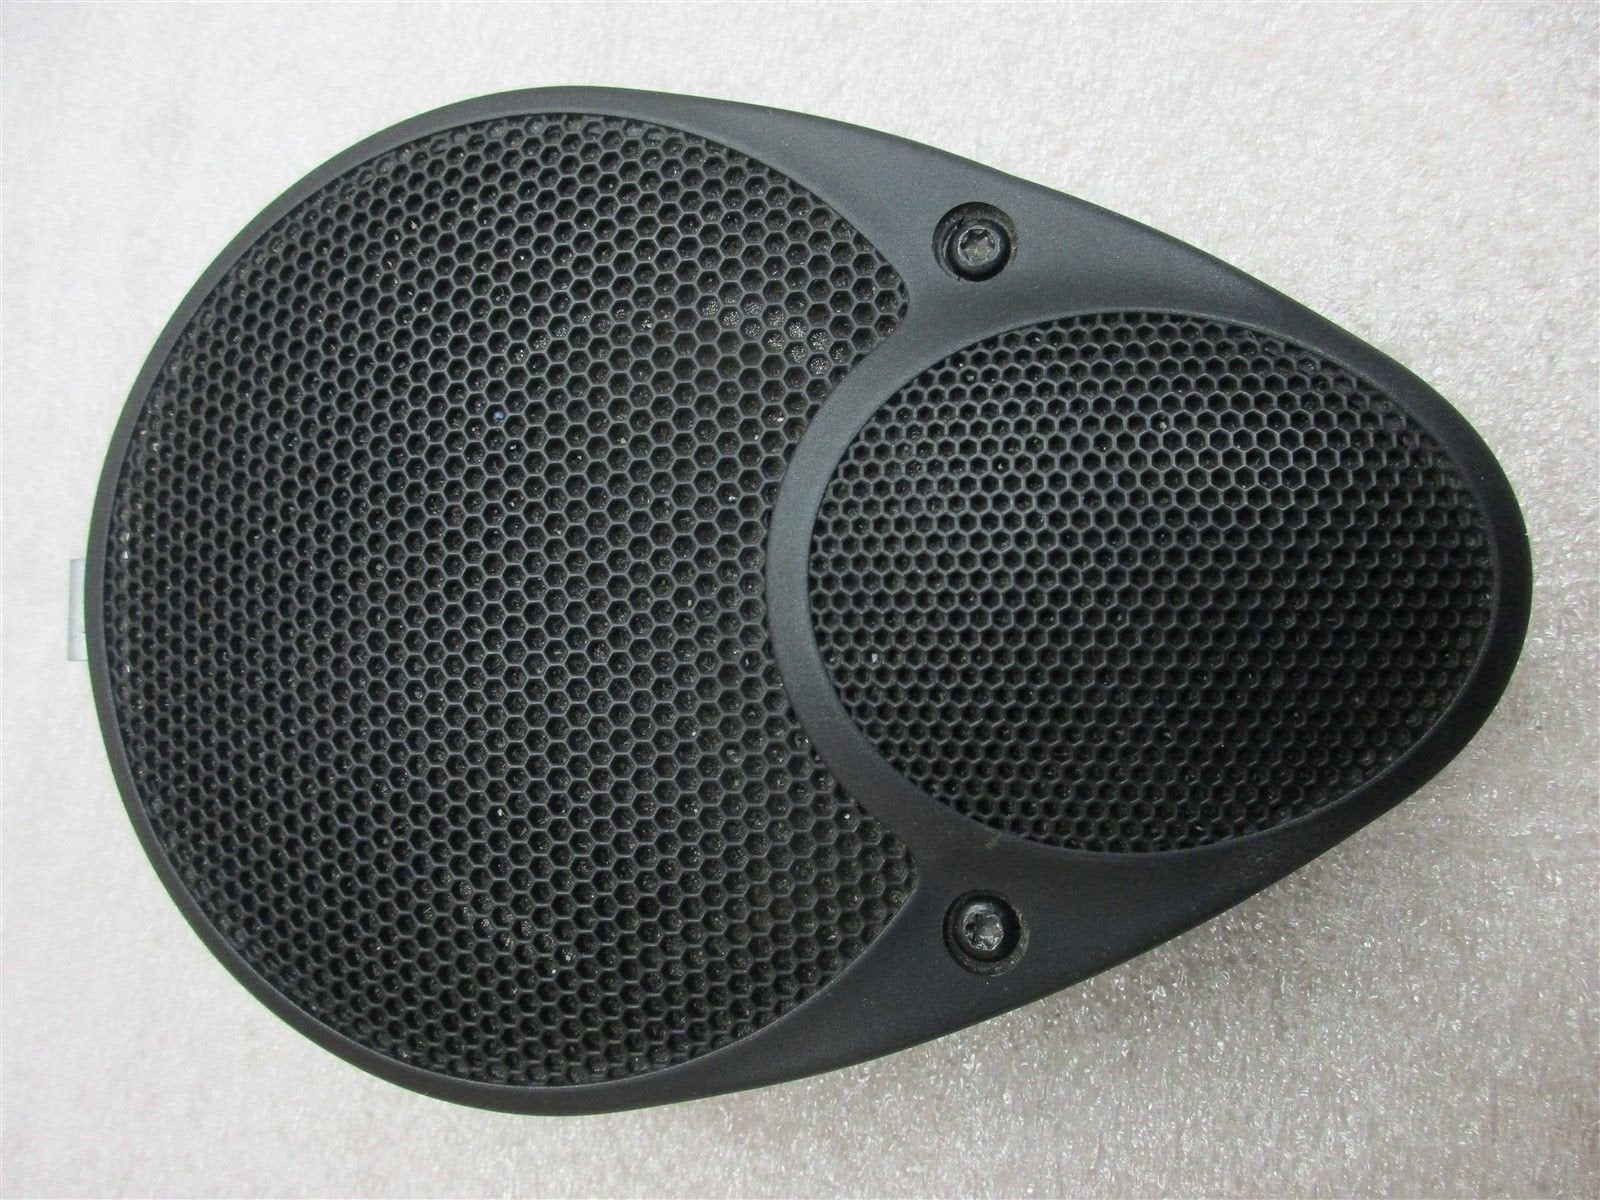 01 Boxster RWD Porsche 986 3 HAES SPEAKERS Black L R 99664503702 49,895